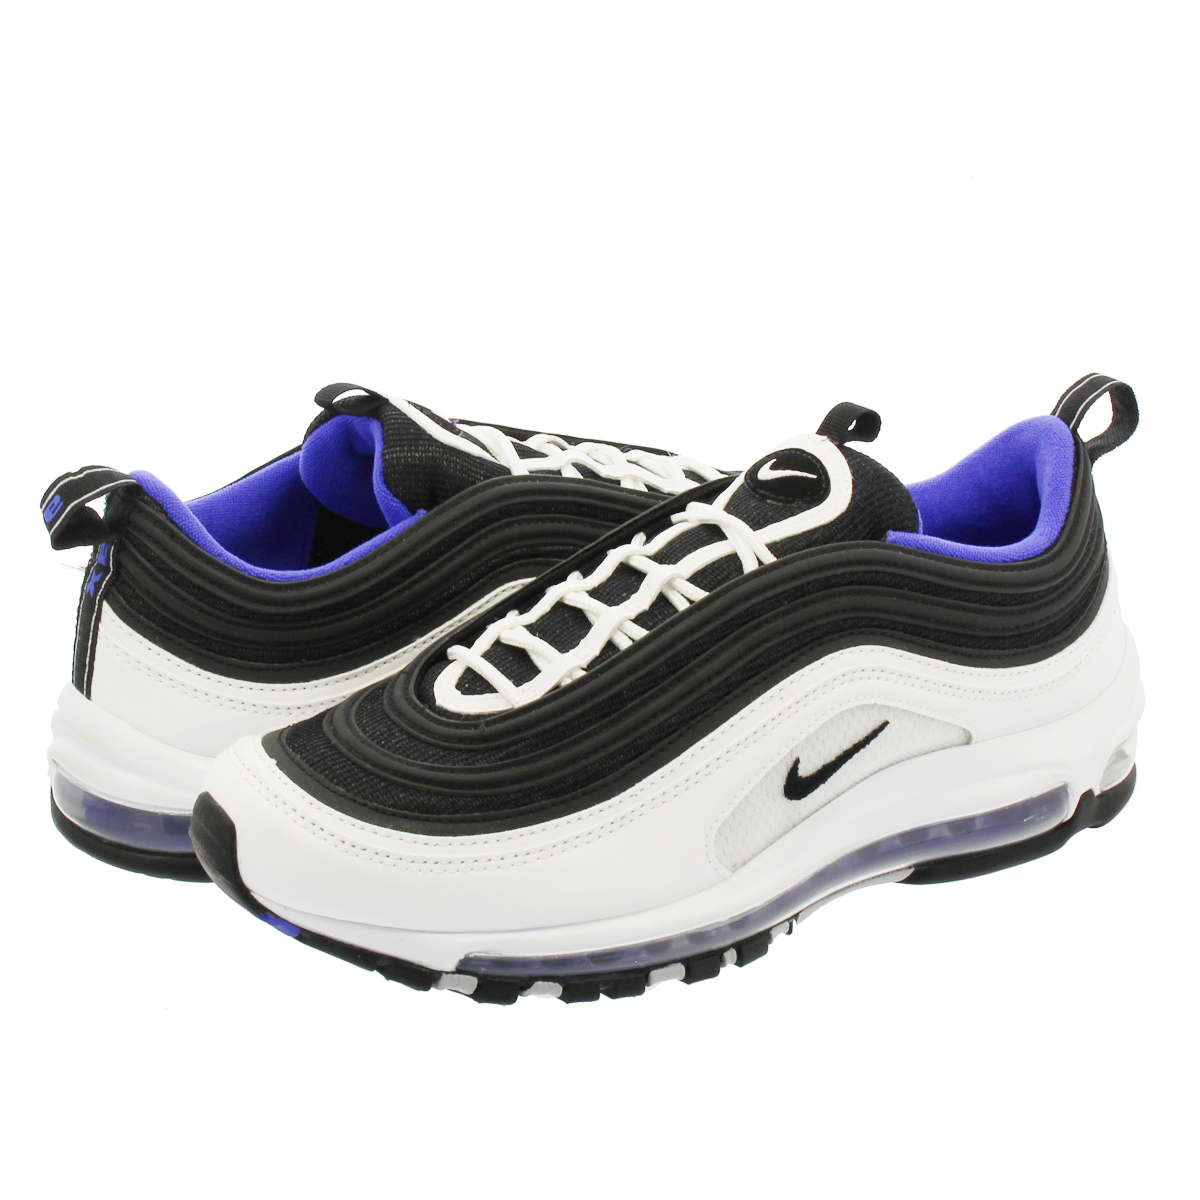 Nike Air Max 97 persian Violet Nike 921826 103 white